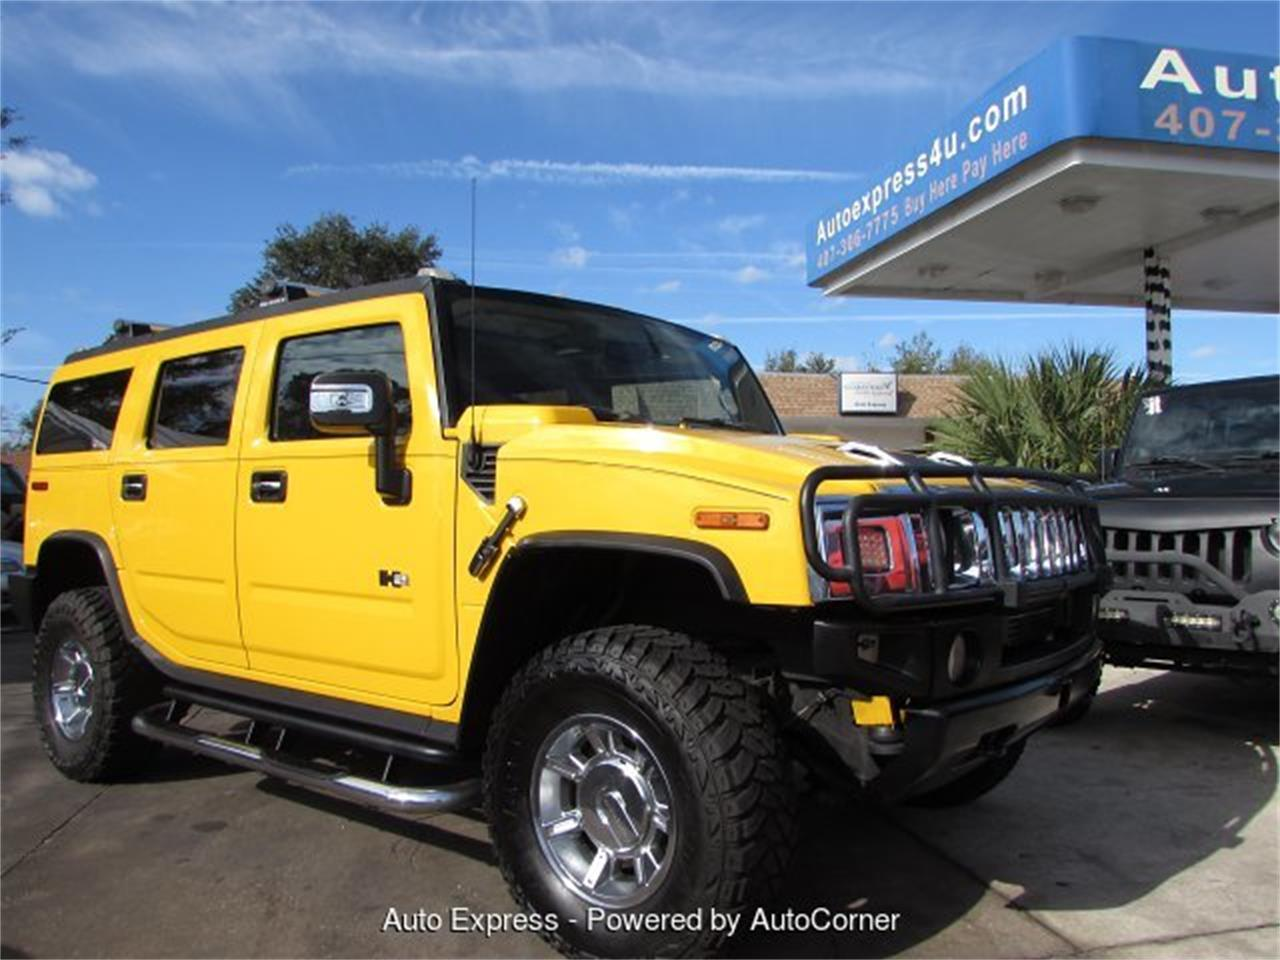 8 Hummer H8 for Sale | ClassicCars.com | CC-8 | hummer h2 for sale in florida